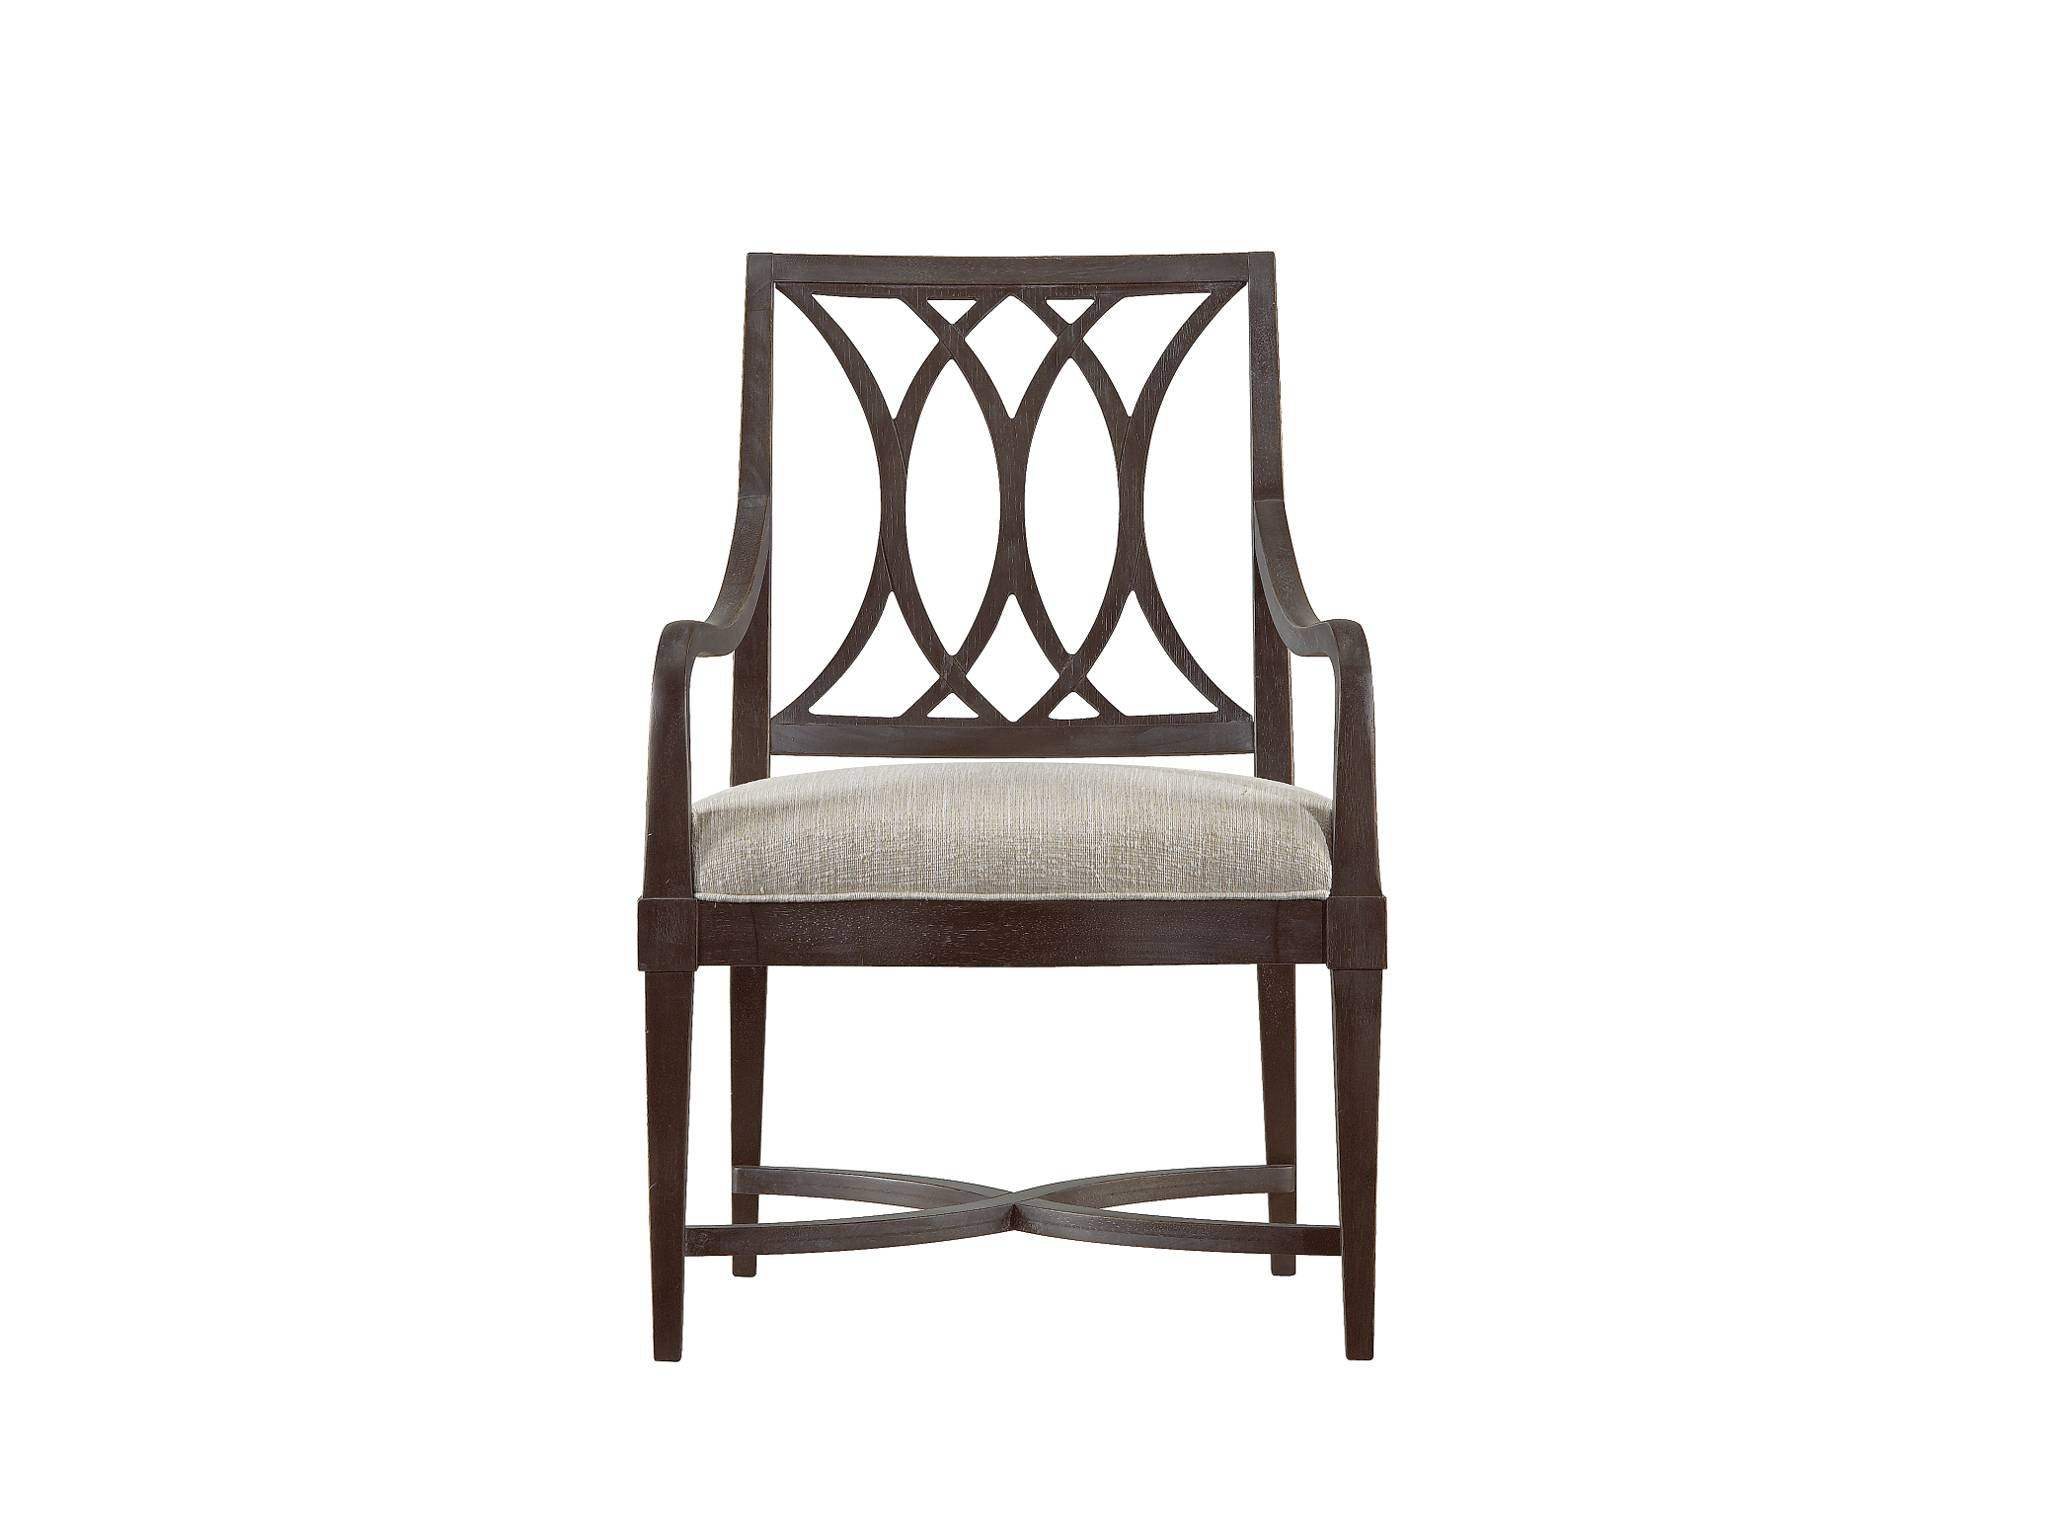 Coastal Living Heritage Coast Arm Chair 062 11 70